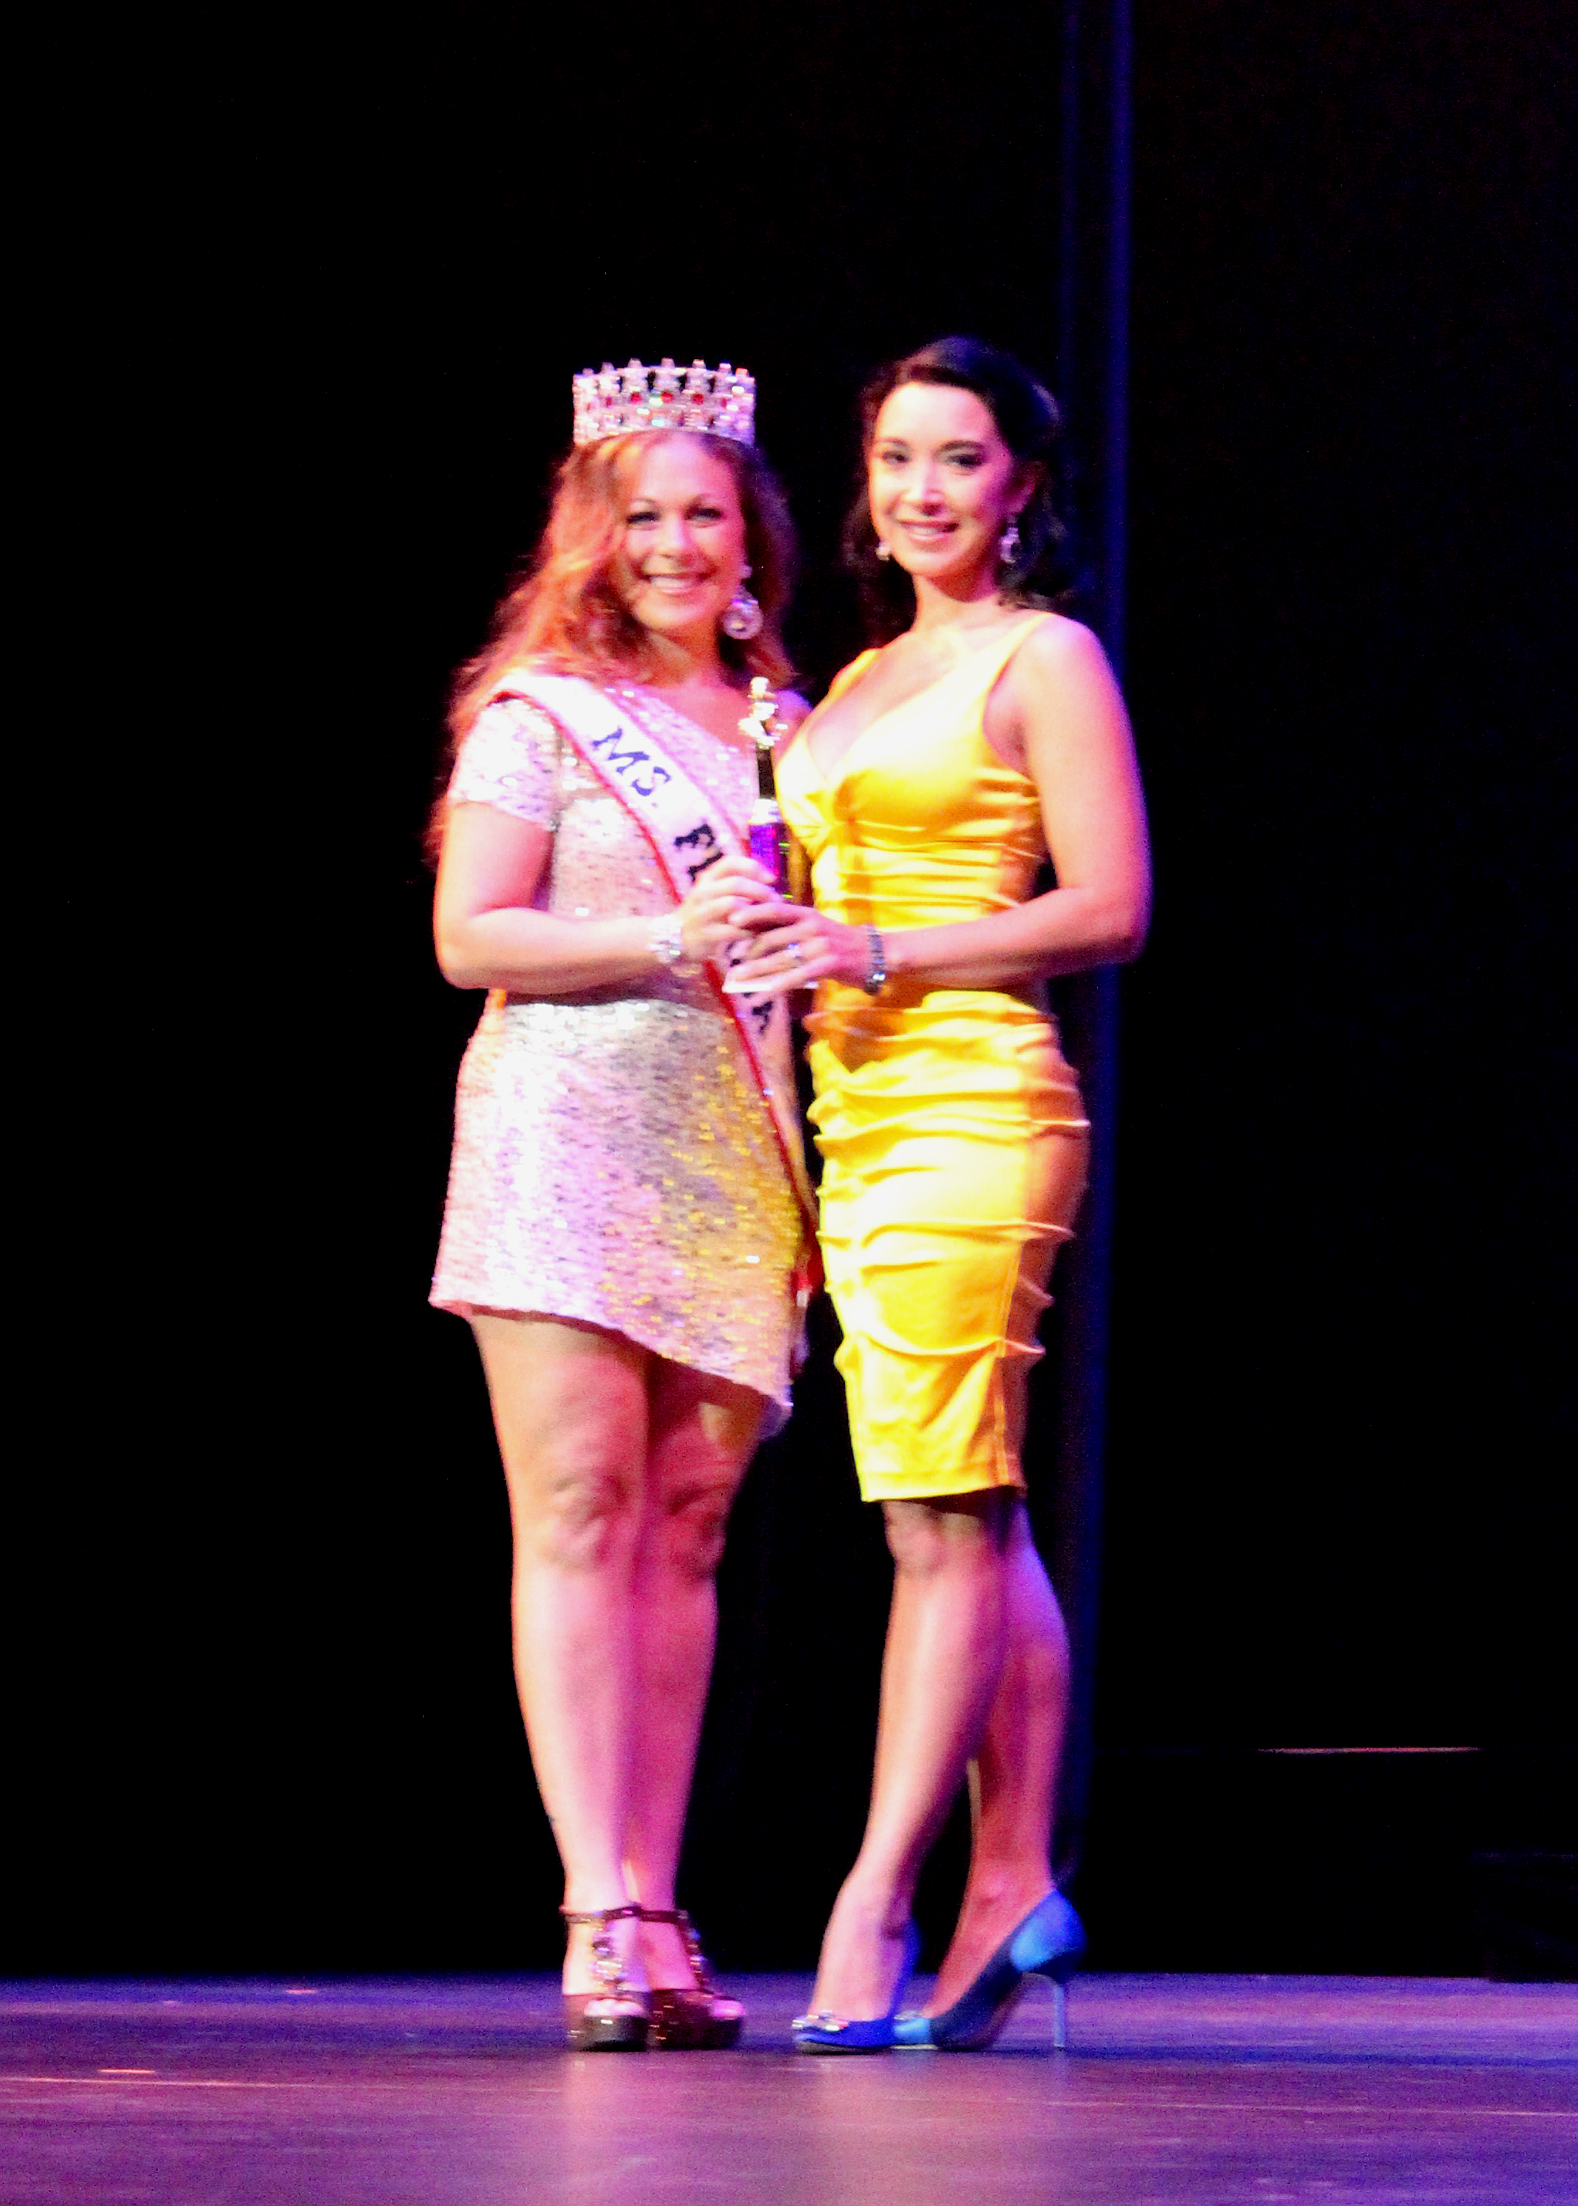 Ms Congeniality Edited